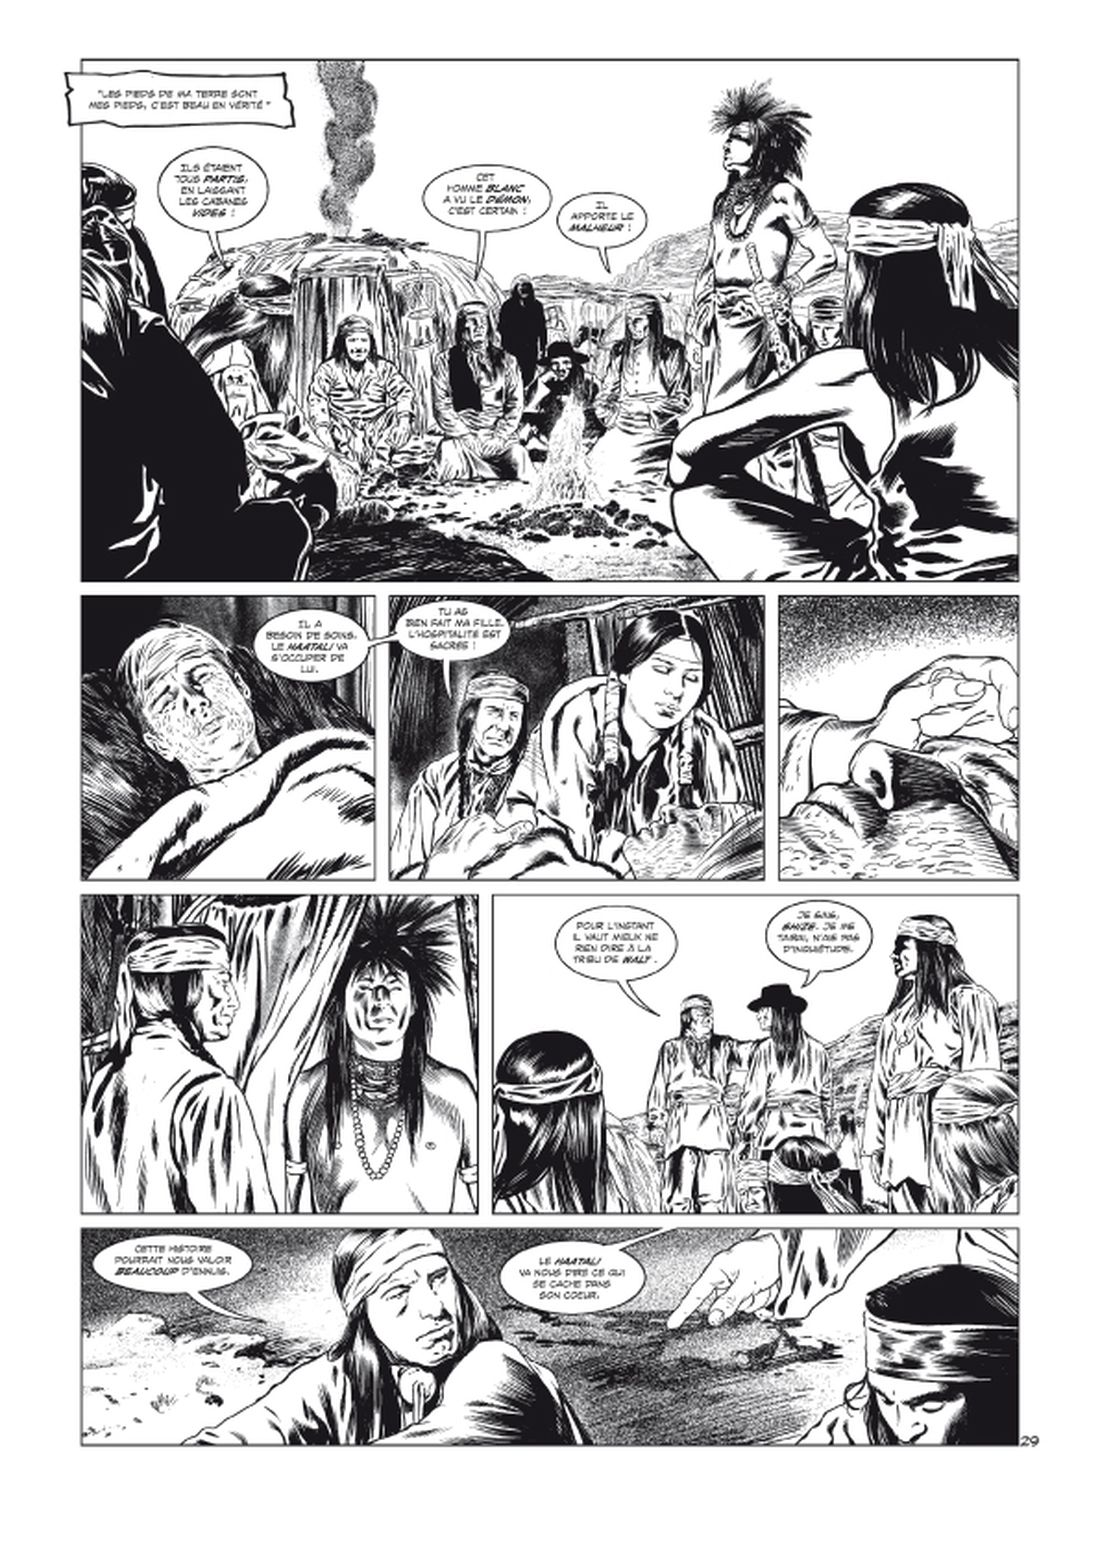 l'Art du Crime, Version noir & blanc de la planche 28 du tome 5 © Glénat / Karl T / Omeyer / Berlion